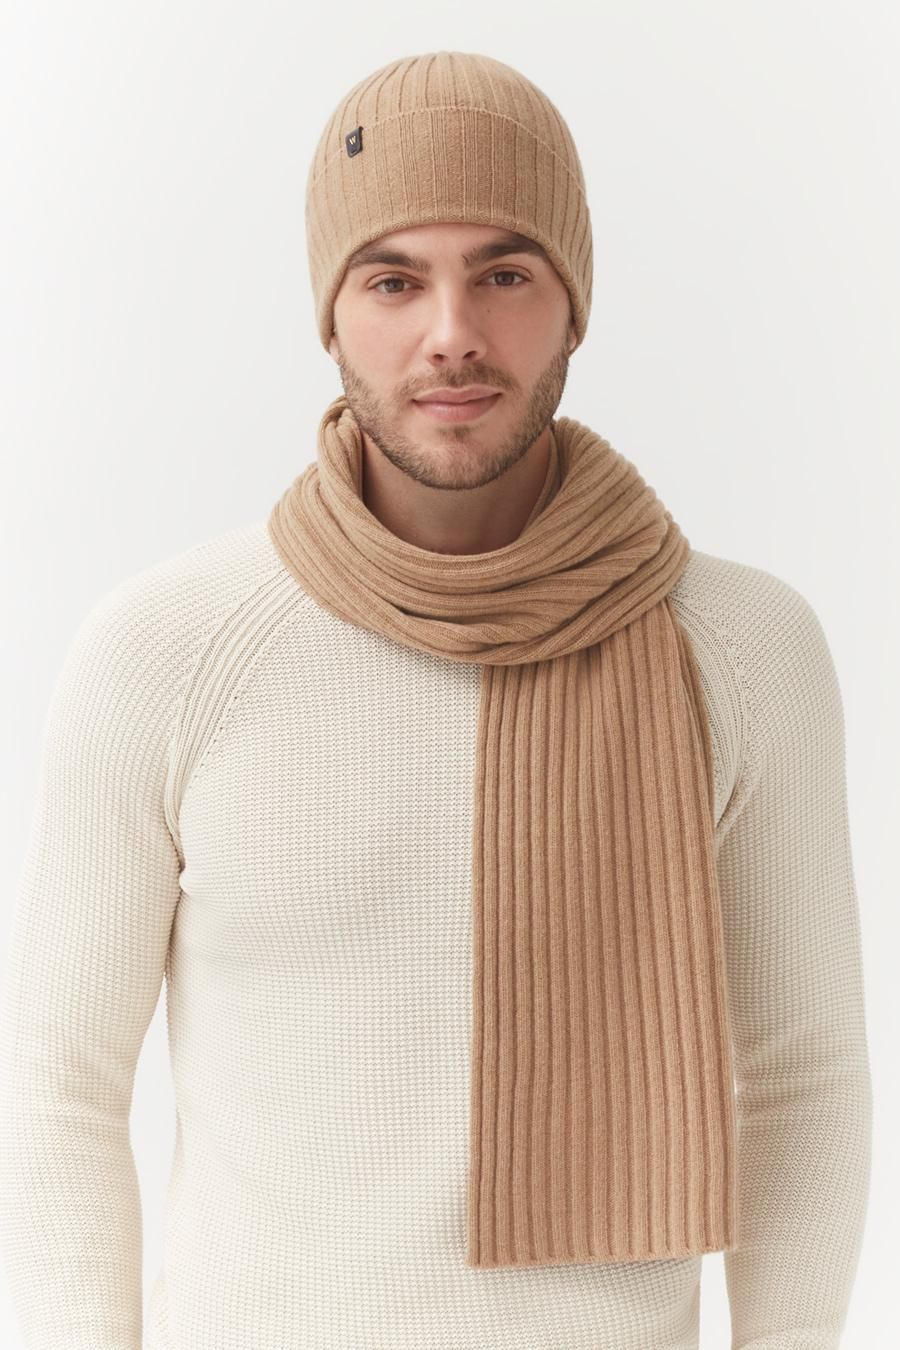 Women's Wool Cashmere Ribbed Beanie in Camel   Wool Cashmere Blend by Cuyana 2